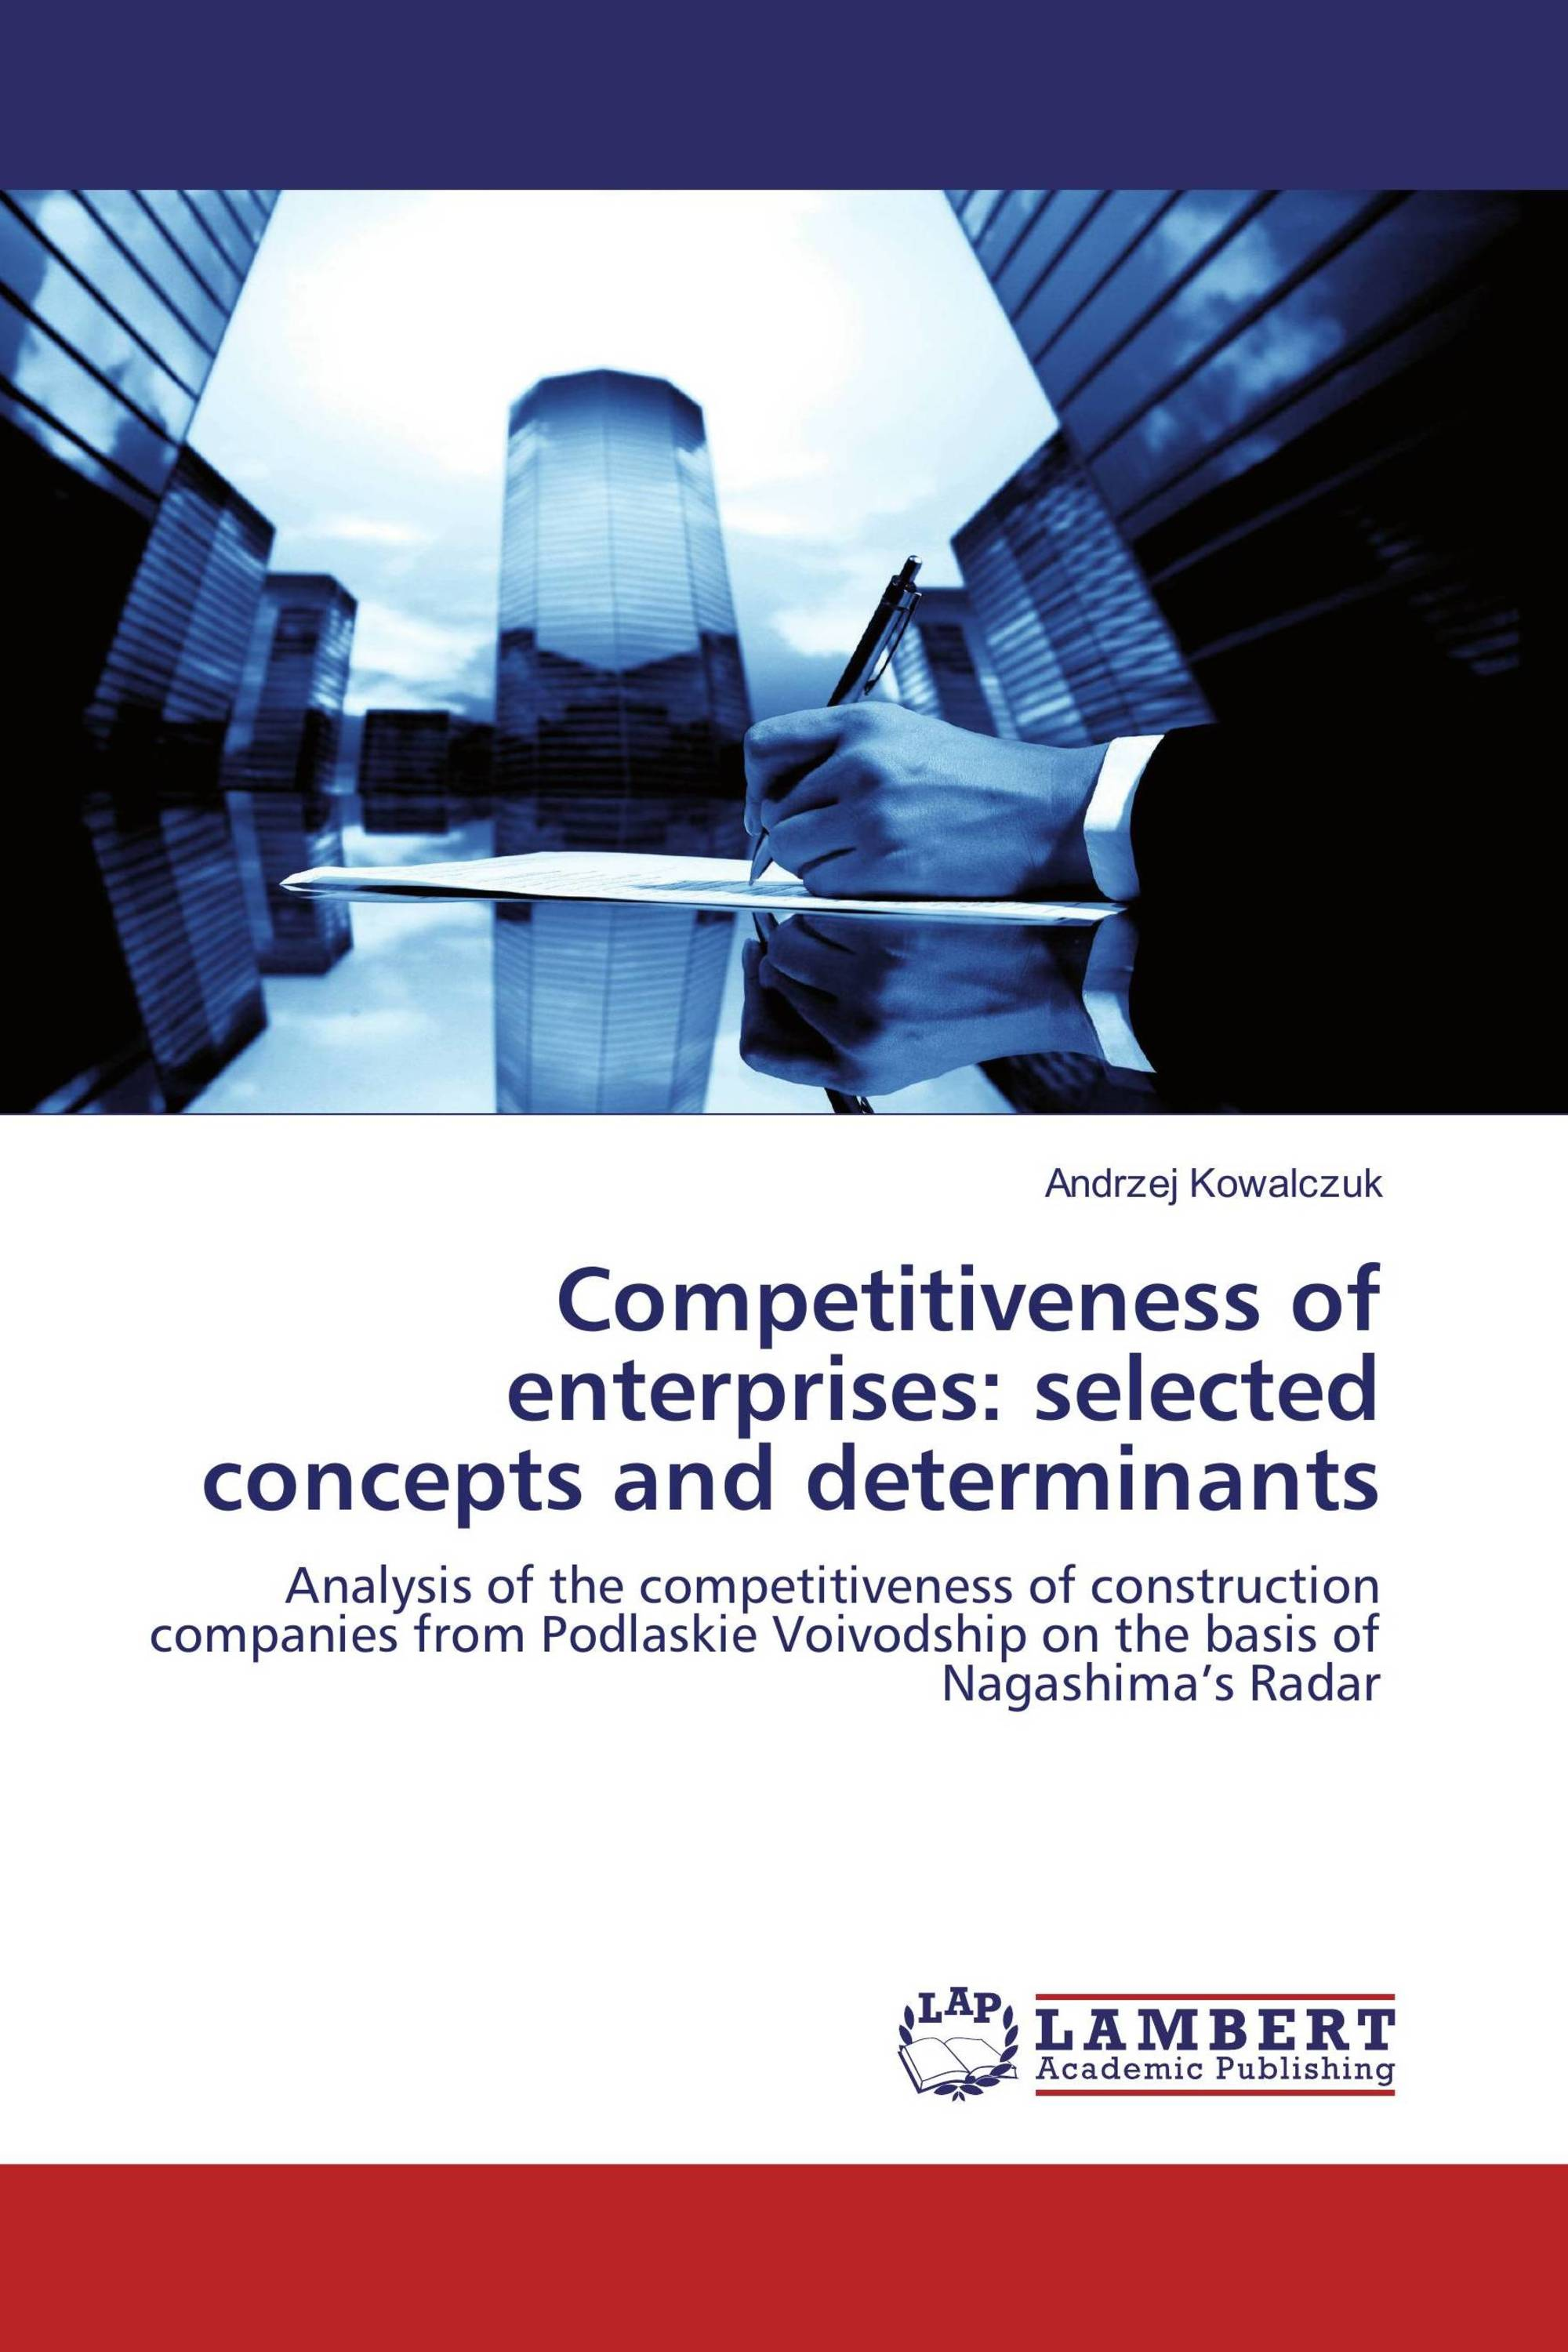 Analysis of enterprise competitiveness. Basic concepts